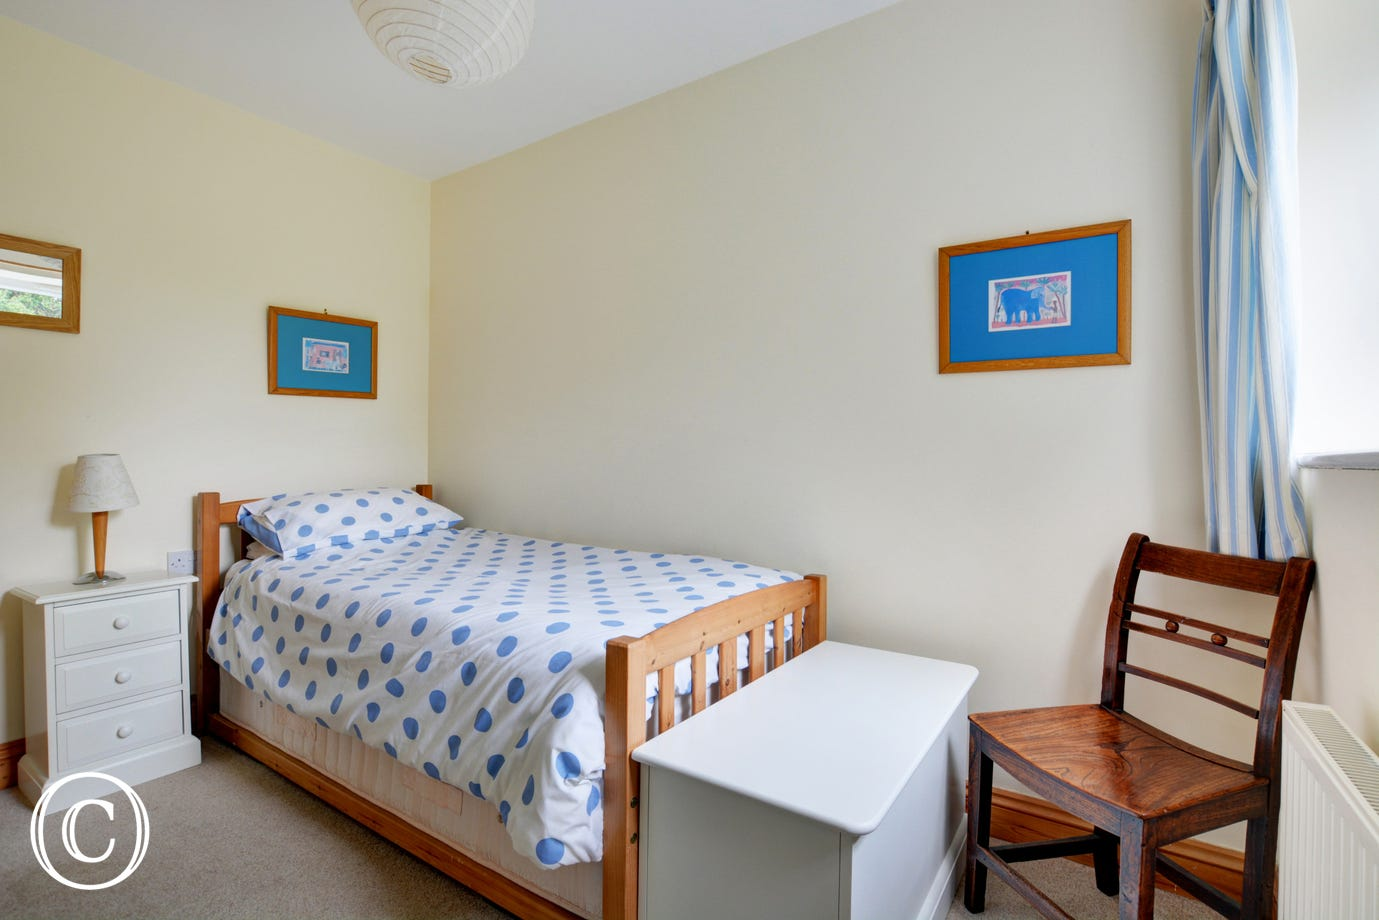 With a single bed and truckle bed, this room could easily accommodate 2 children